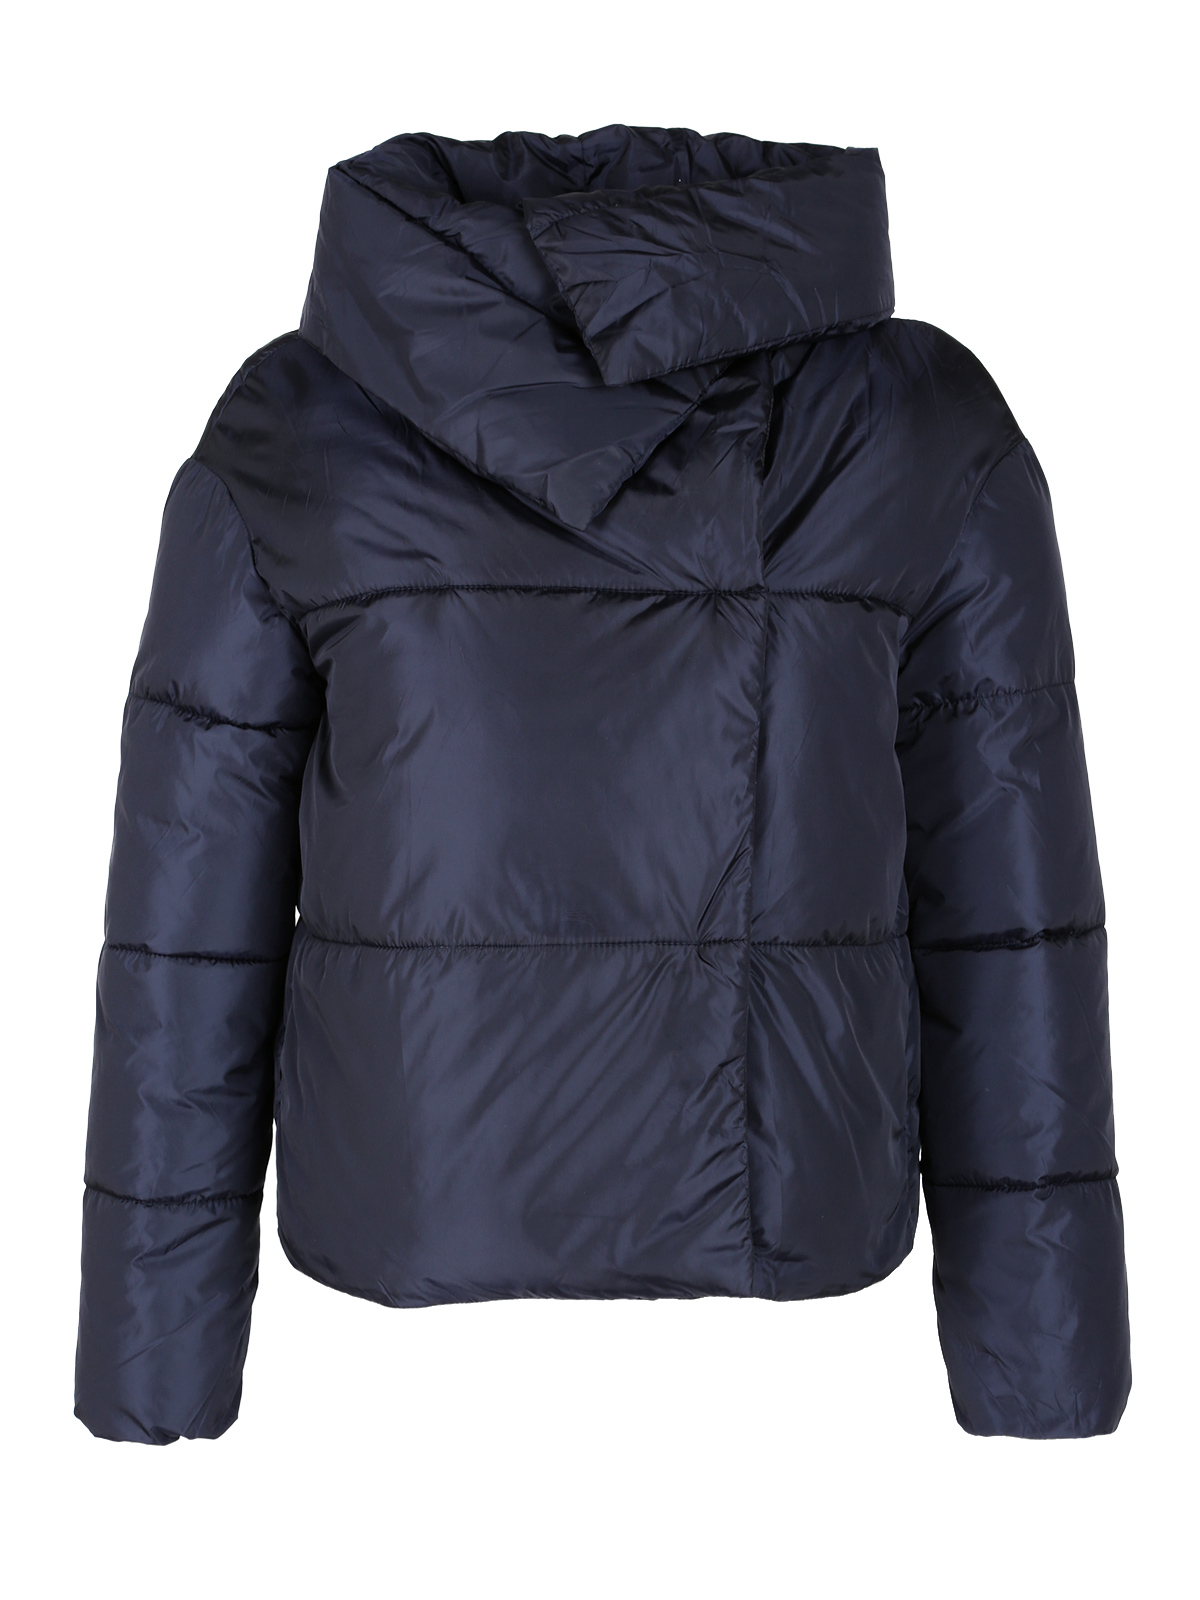 Veste Coton Manteau Court breasted Bleu Single Femme Chaud 5YXqx